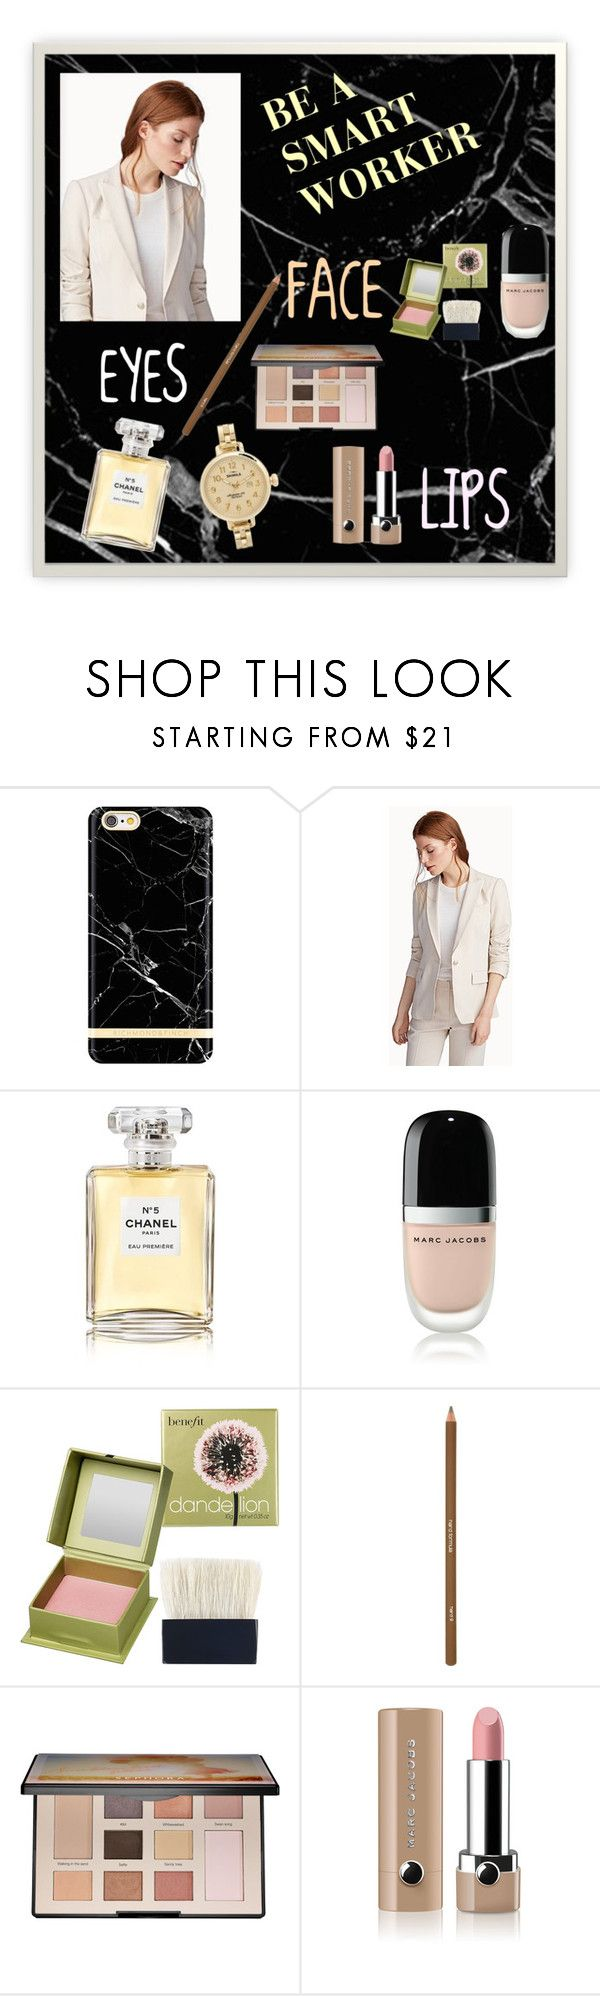 """""""Be a smart worker"""" by perfectmiracle ❤ liked on Polyvore featuring beauty, Judith & Charles, Chanel, Marc Jacobs, Benefit, shu uemura, Sephora Collection and Shinola"""